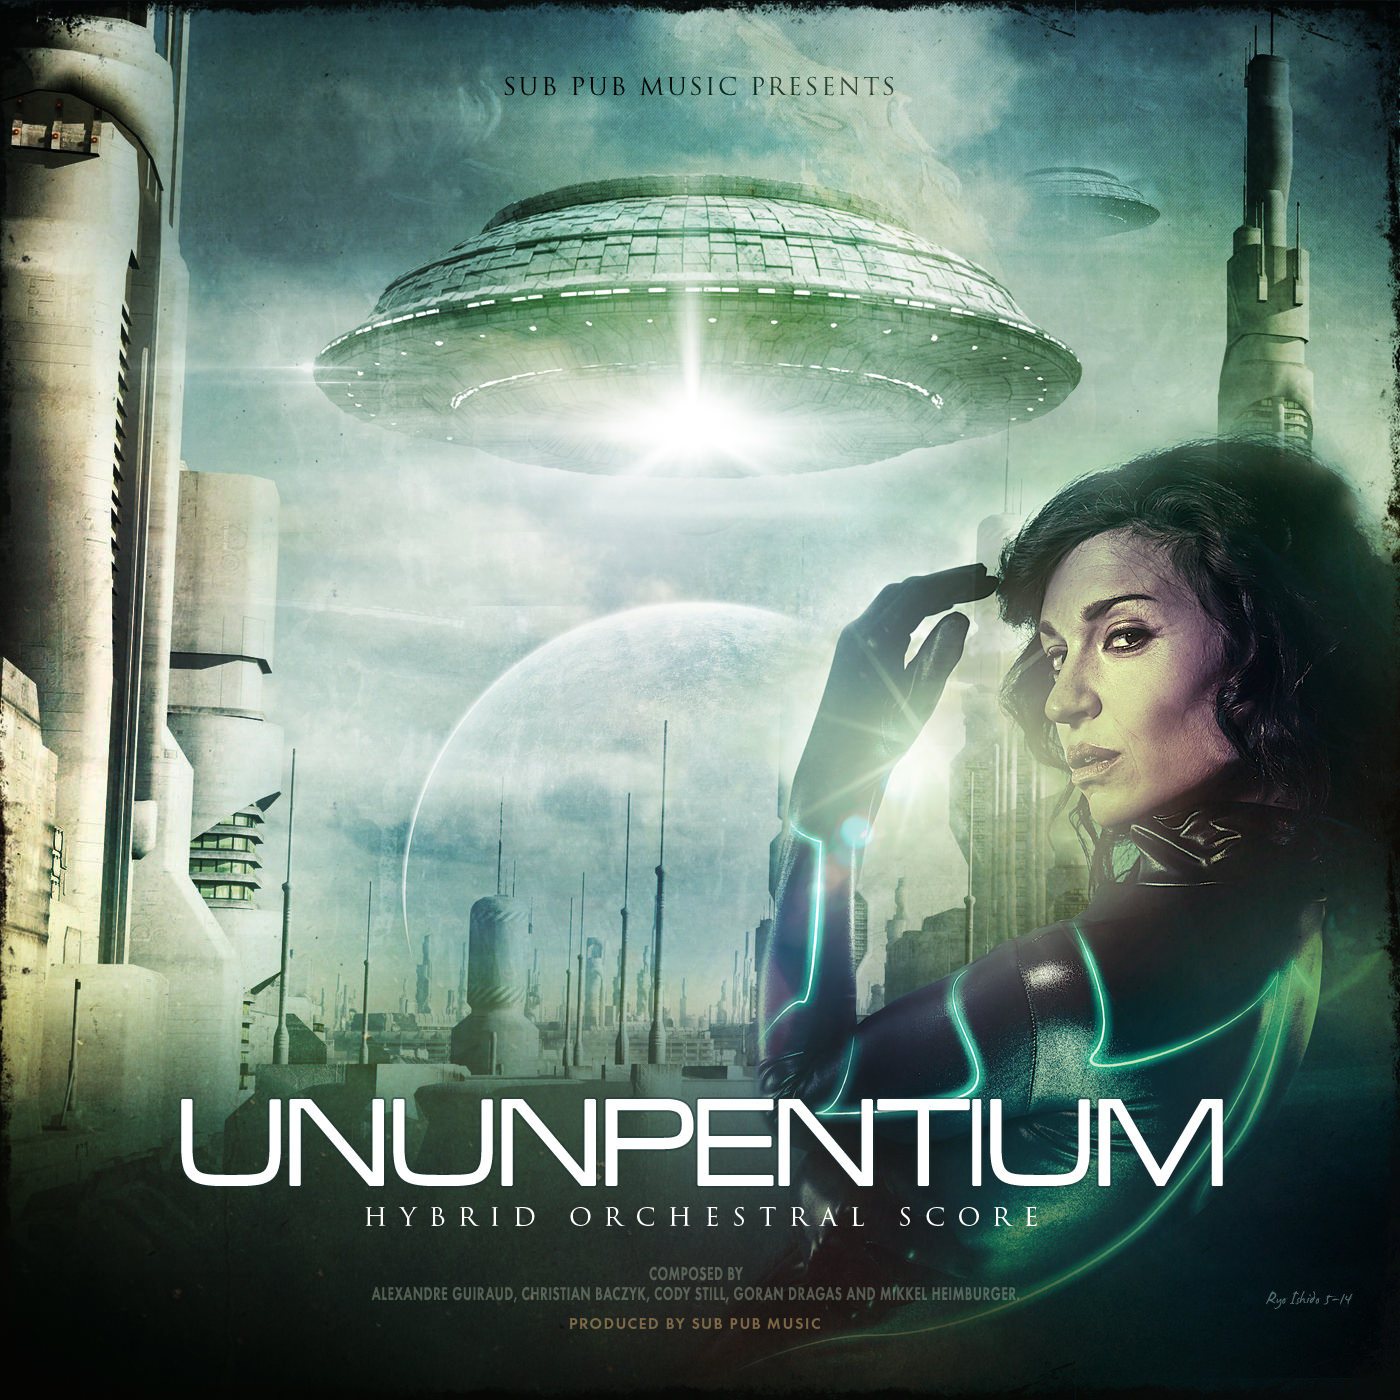 Copy of Sub Pub Music - Ununpentium - Cody Still - Composer - Music